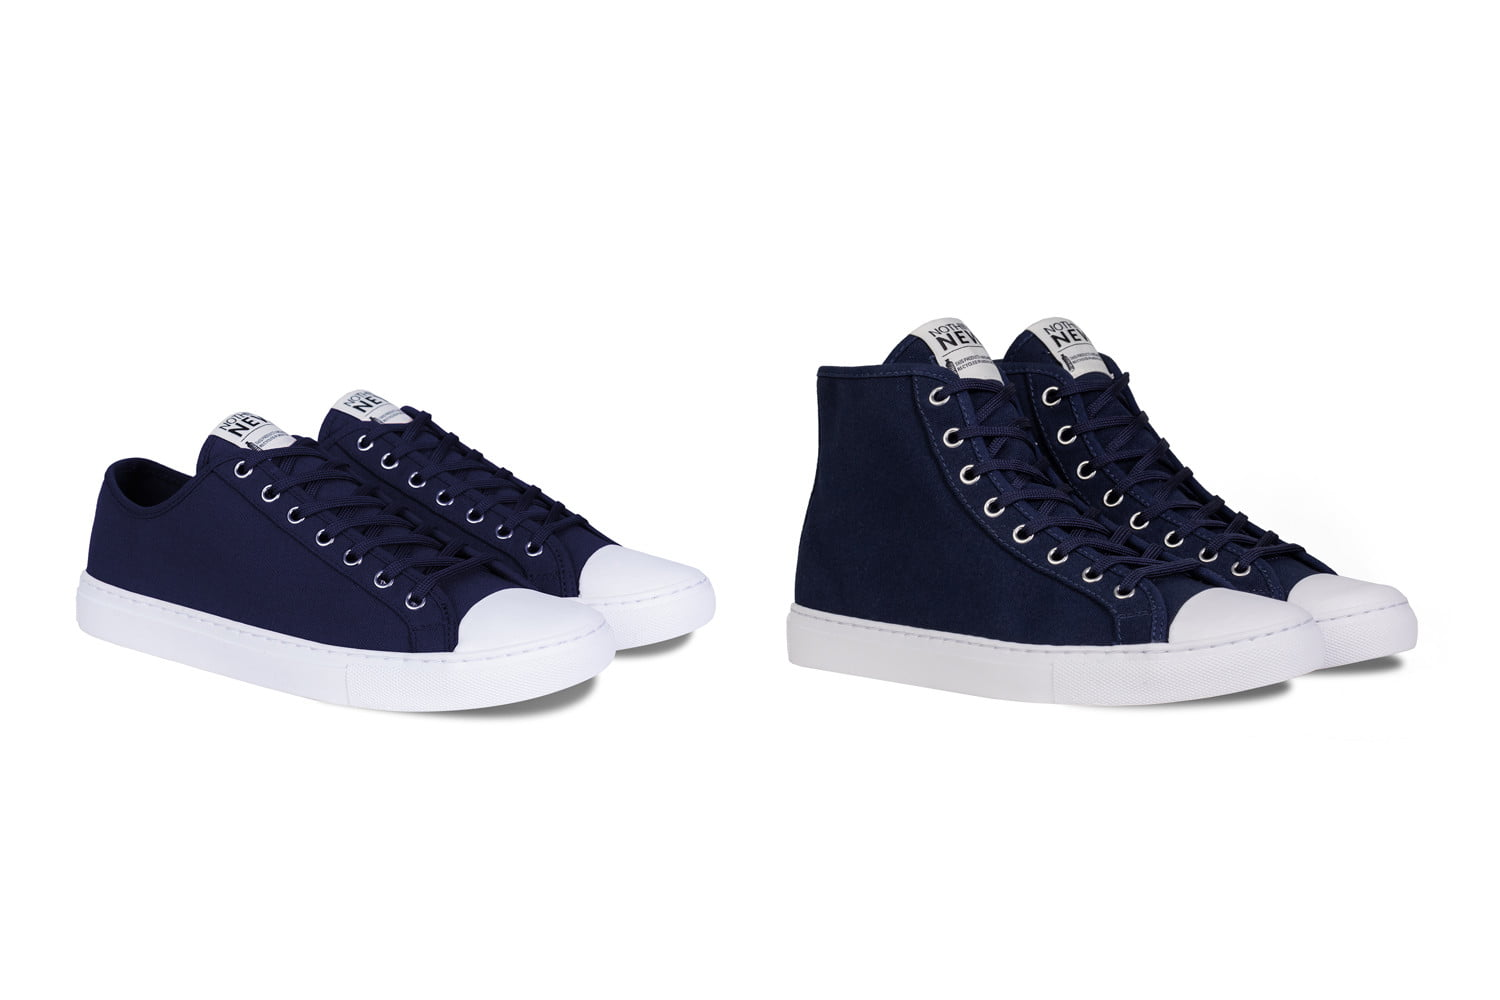 nothing new sustainable sneakers shoes navy lowhigh top